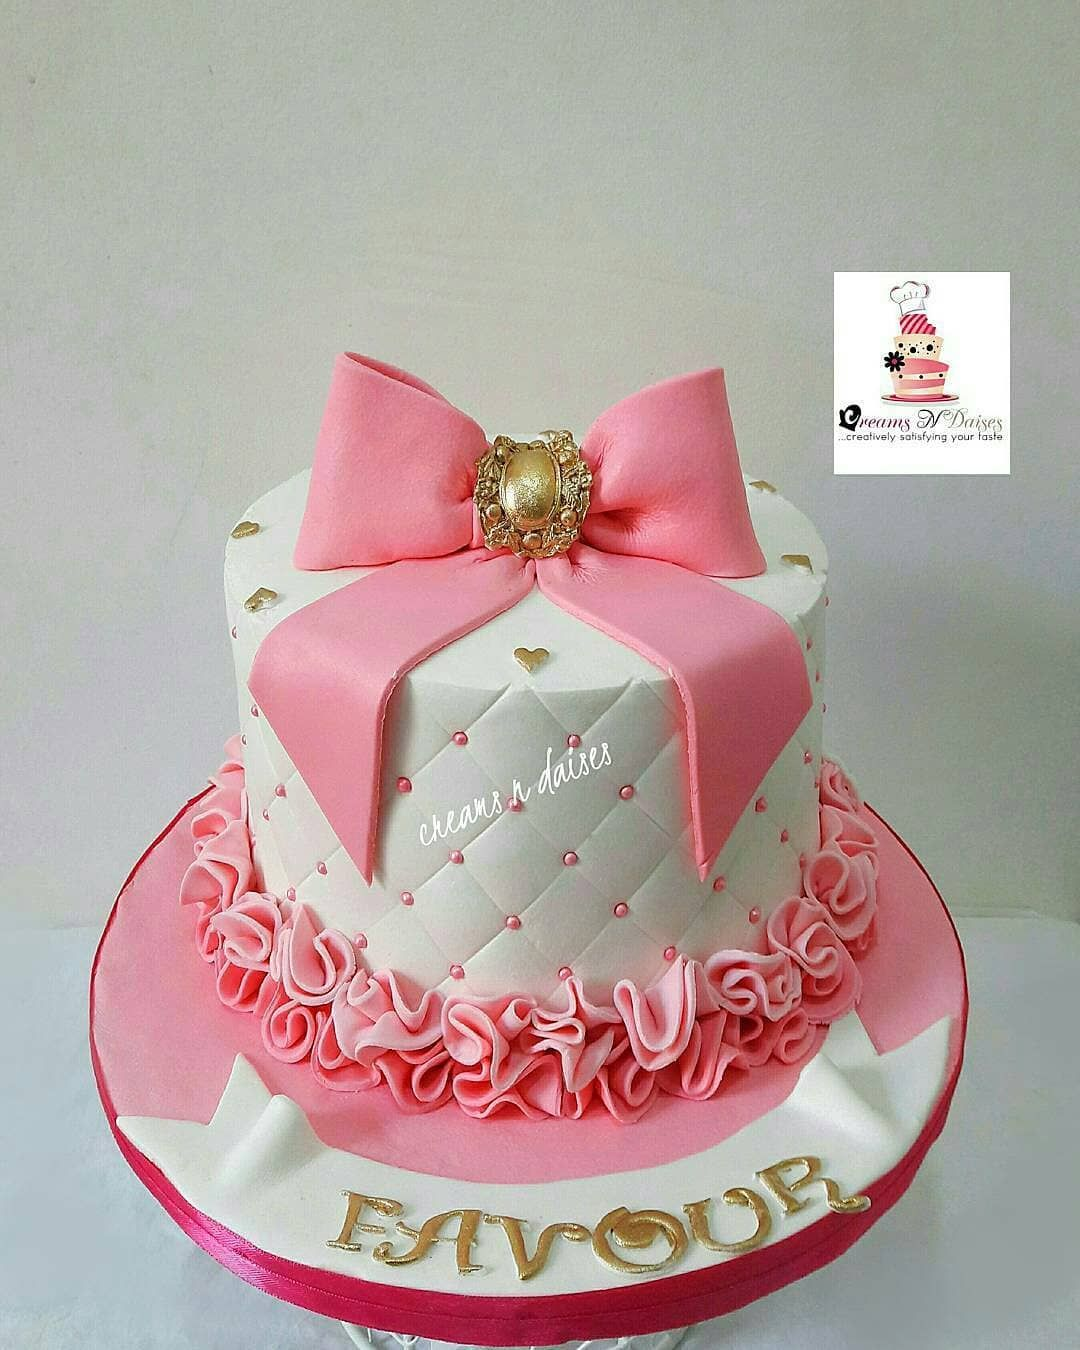 1,304 Likes, 2 Comments Nigeria's Foremost Cake Blog